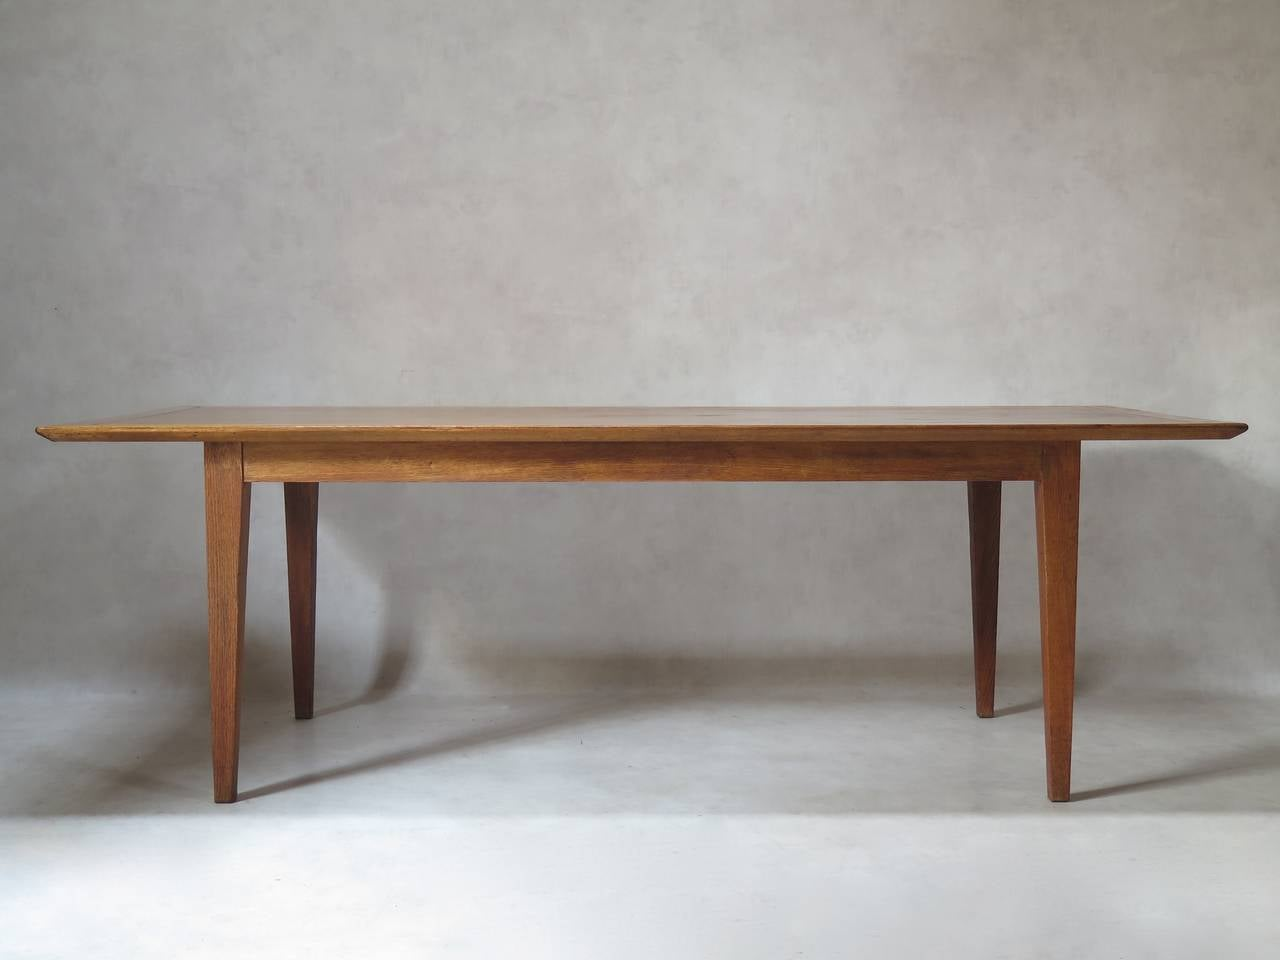 Japanese Dining Table For Sale Japanese Inspired Oak Credenza And Dining Table By Colette